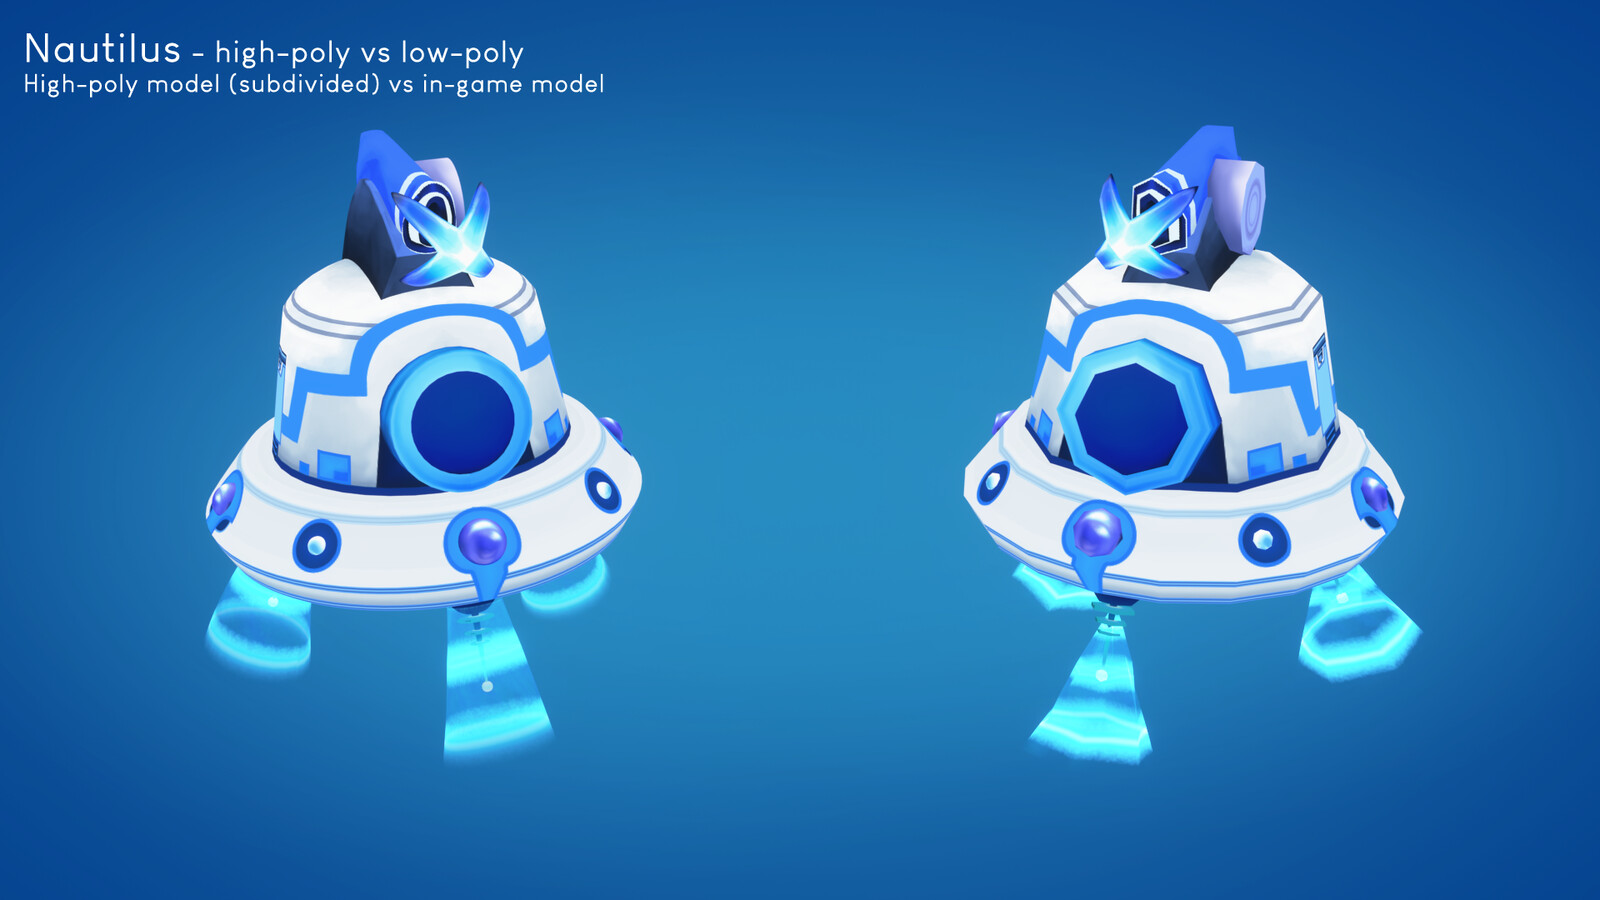 Comparison between the high-poly (subdivided) and low-poly (game-ready) versions.